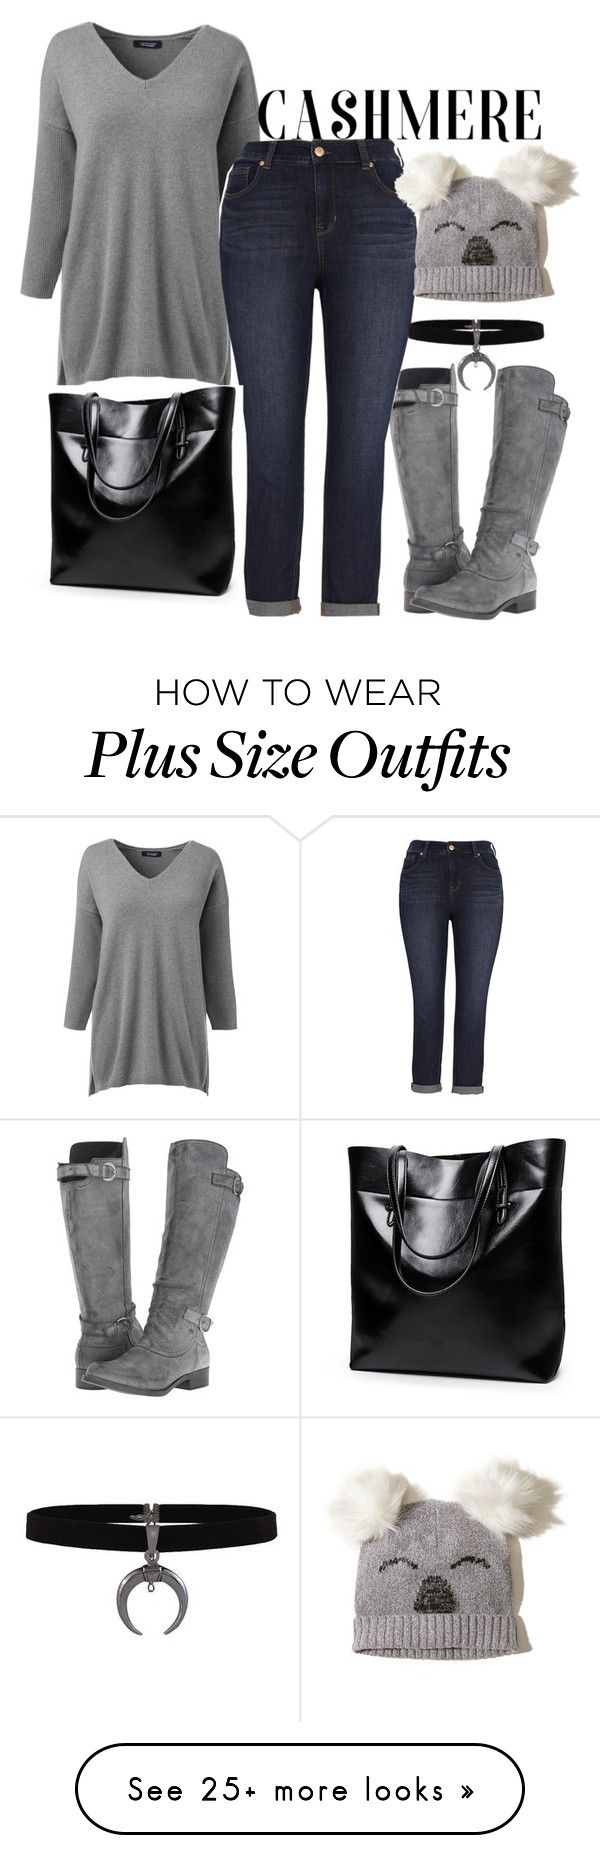 """Untitled #719"" by ashantay87 on Polyvore featuring Rocket Dog, Lands' End, Melissa McCarthy Seven7 and Hollister Co."